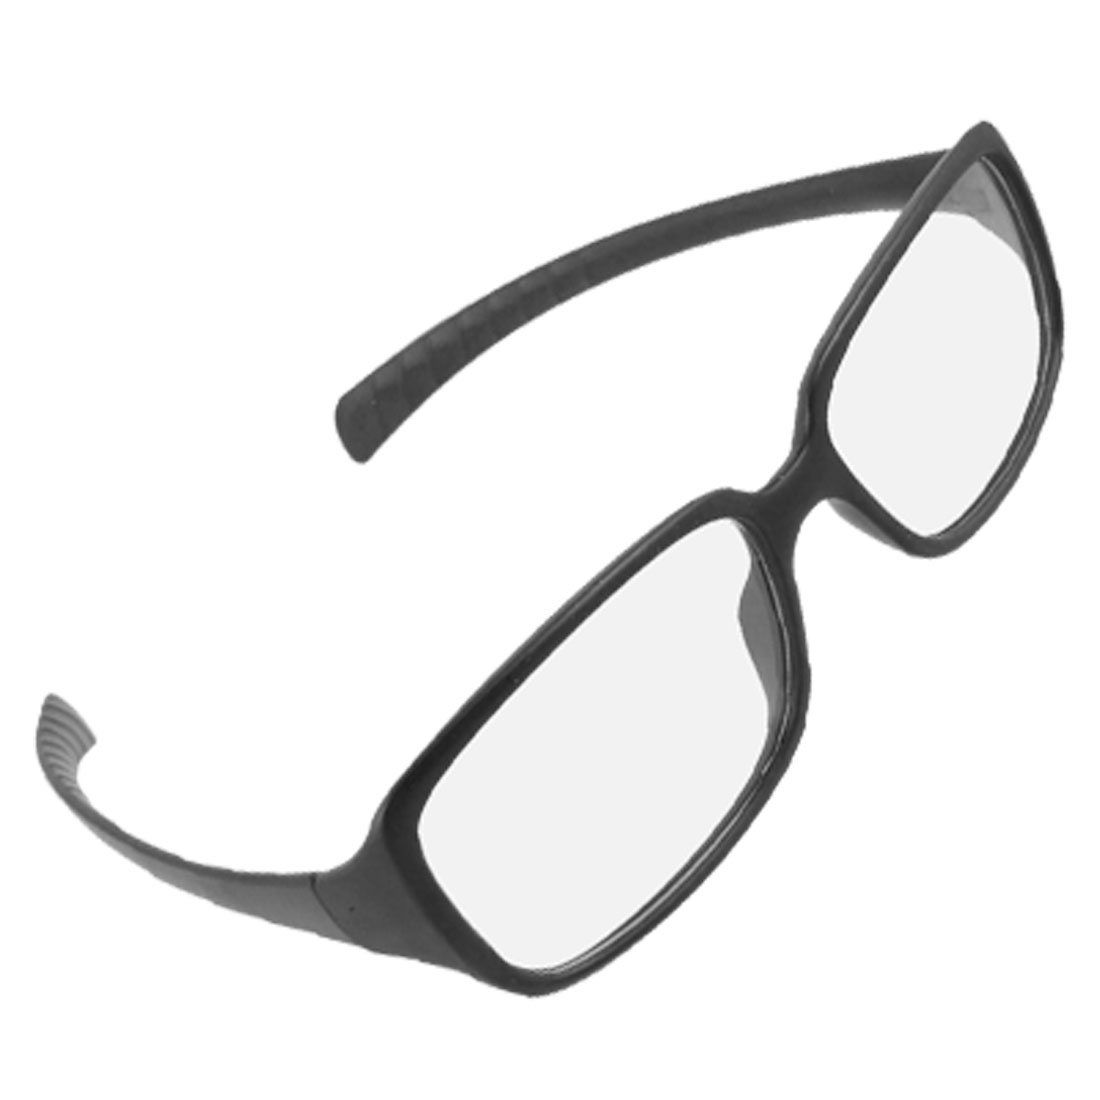 Unisex Rimmed Black Frame Ribbed Arms Clear Lens Plano Glasses